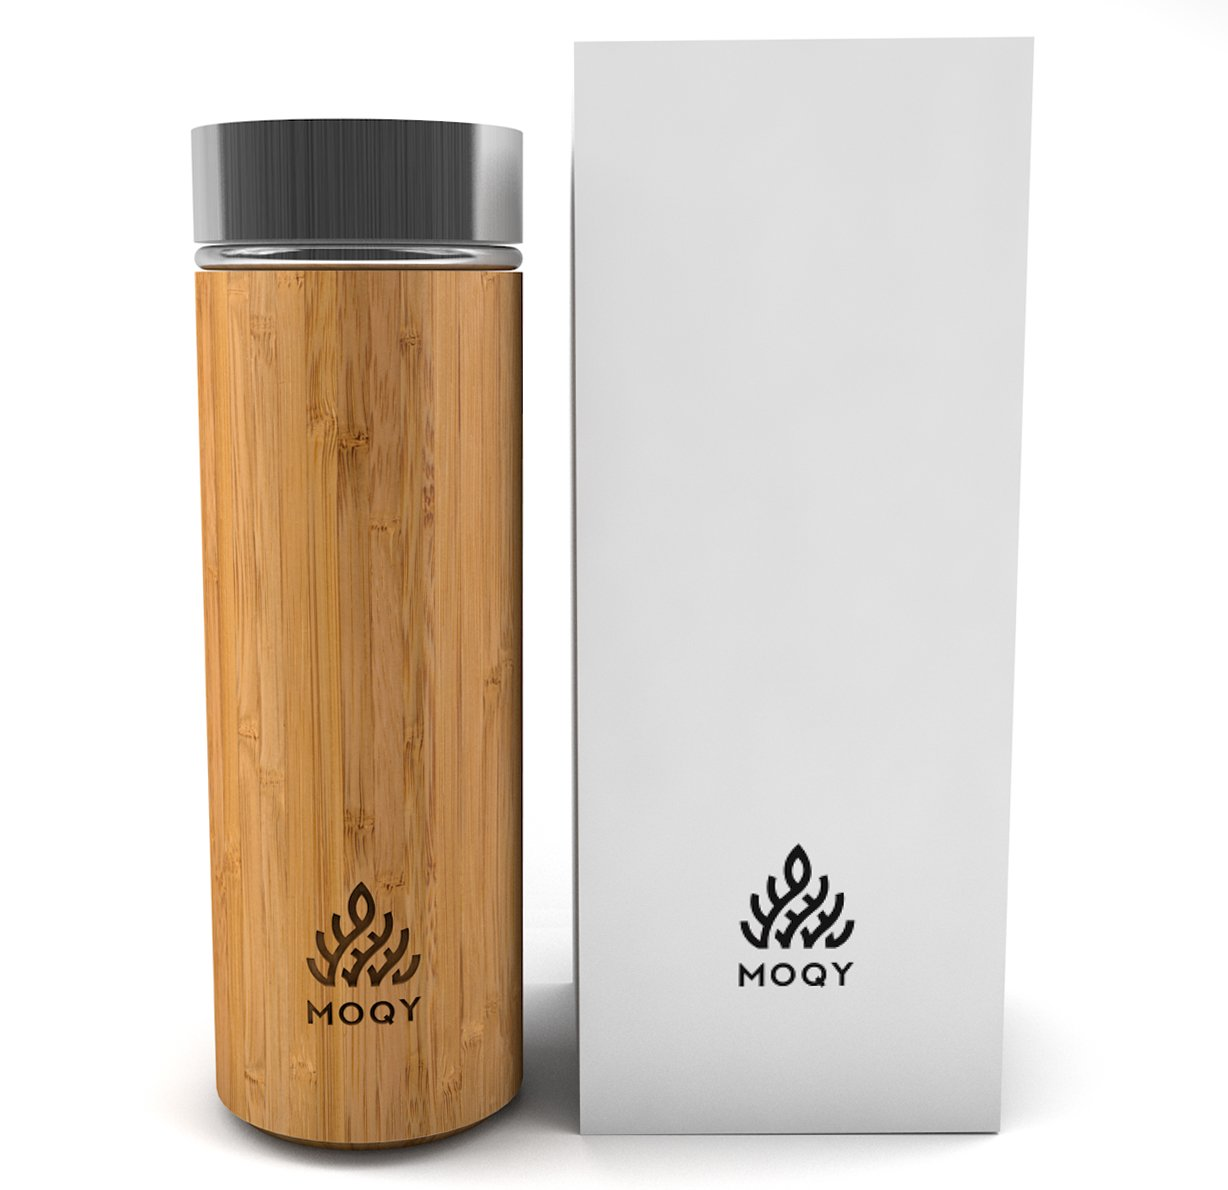 MOQY Tea Tumbler - Bamboo Stainless Steel Thermos - Insulated Coffee Travel Mug With Lid - Tea Infuser Bottle For Loose Leaf Tea - 12oz